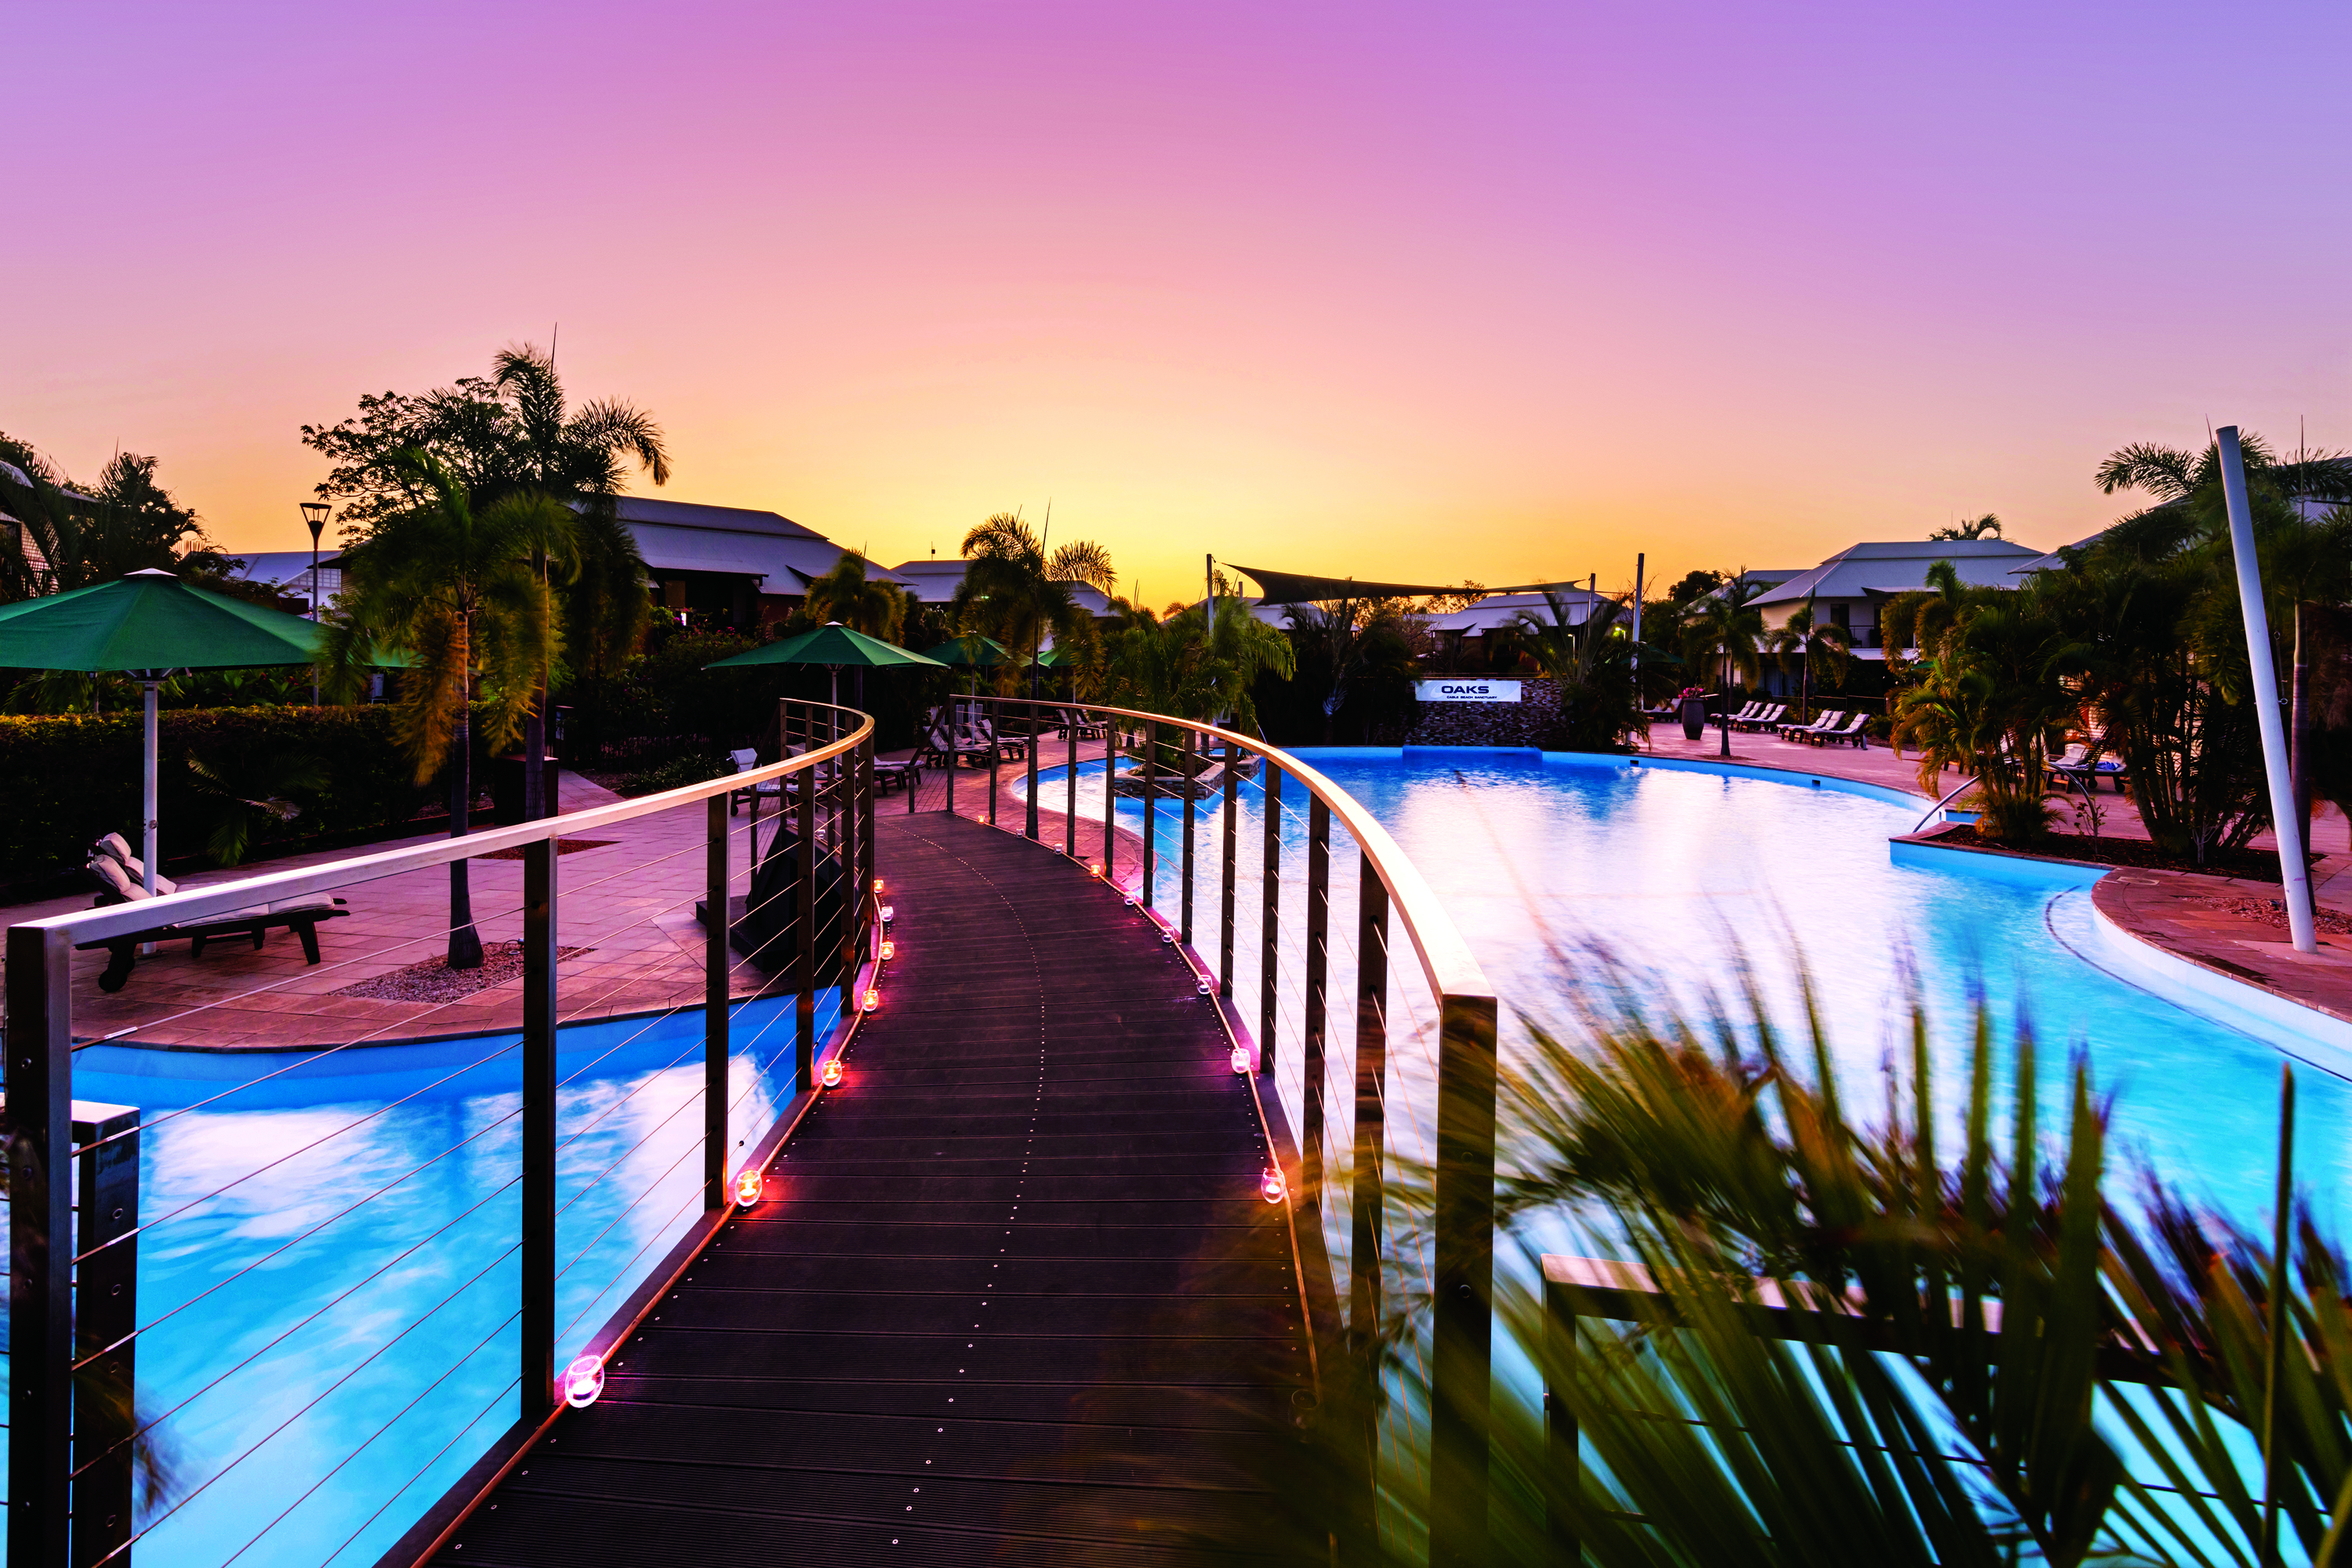 Our Top Picks For The Best Beach Accommodation In Broome